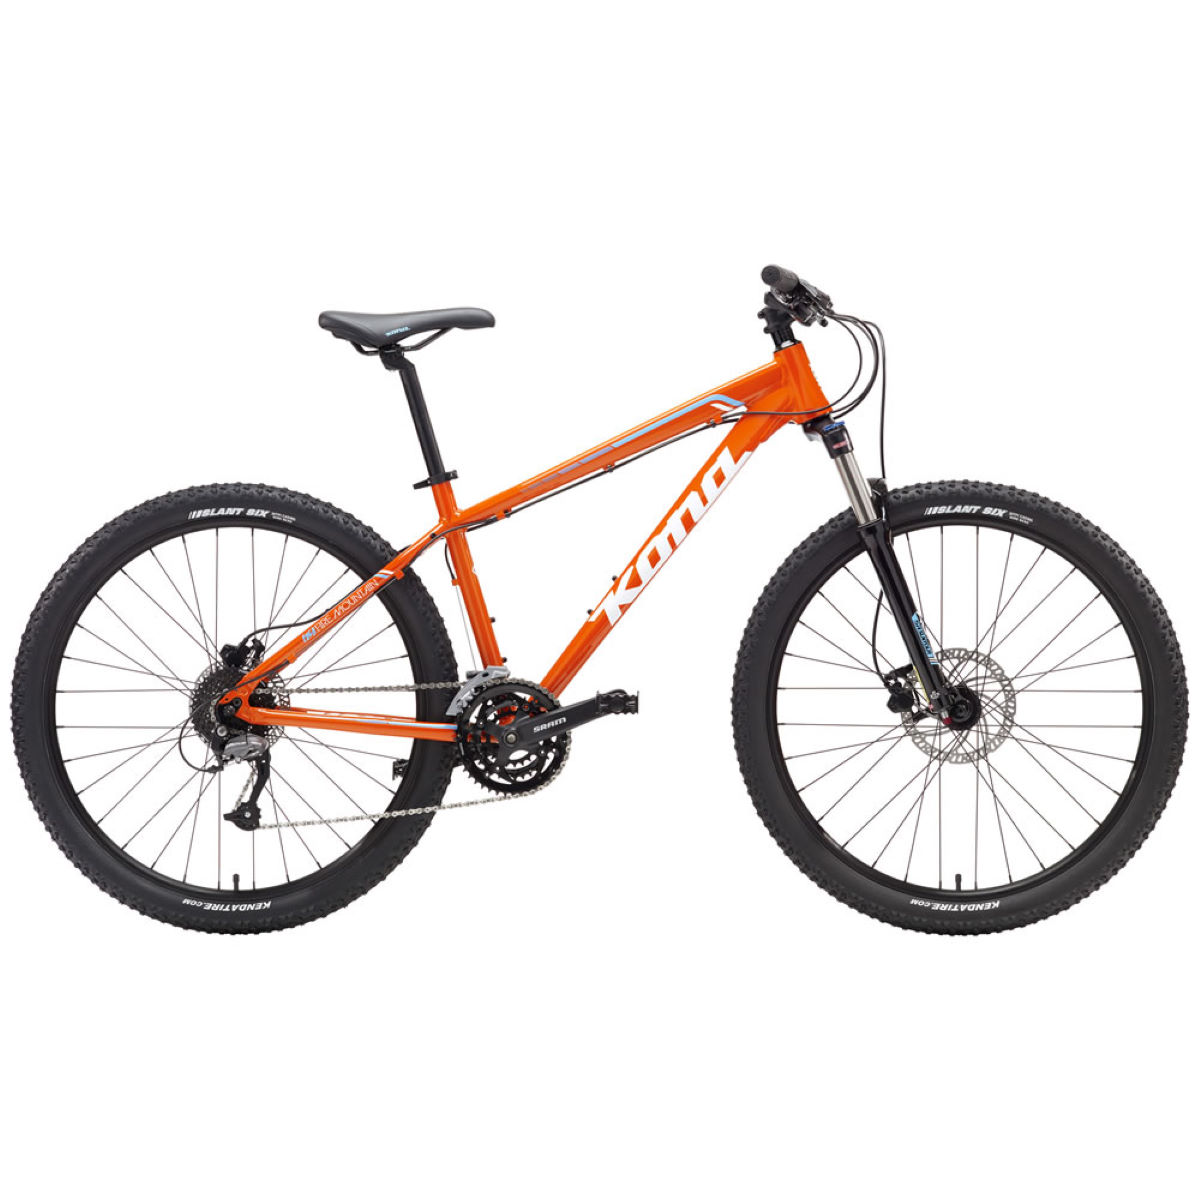 VTT Kona Fire Mountain (2017) - M Orange VTT semi-rigides